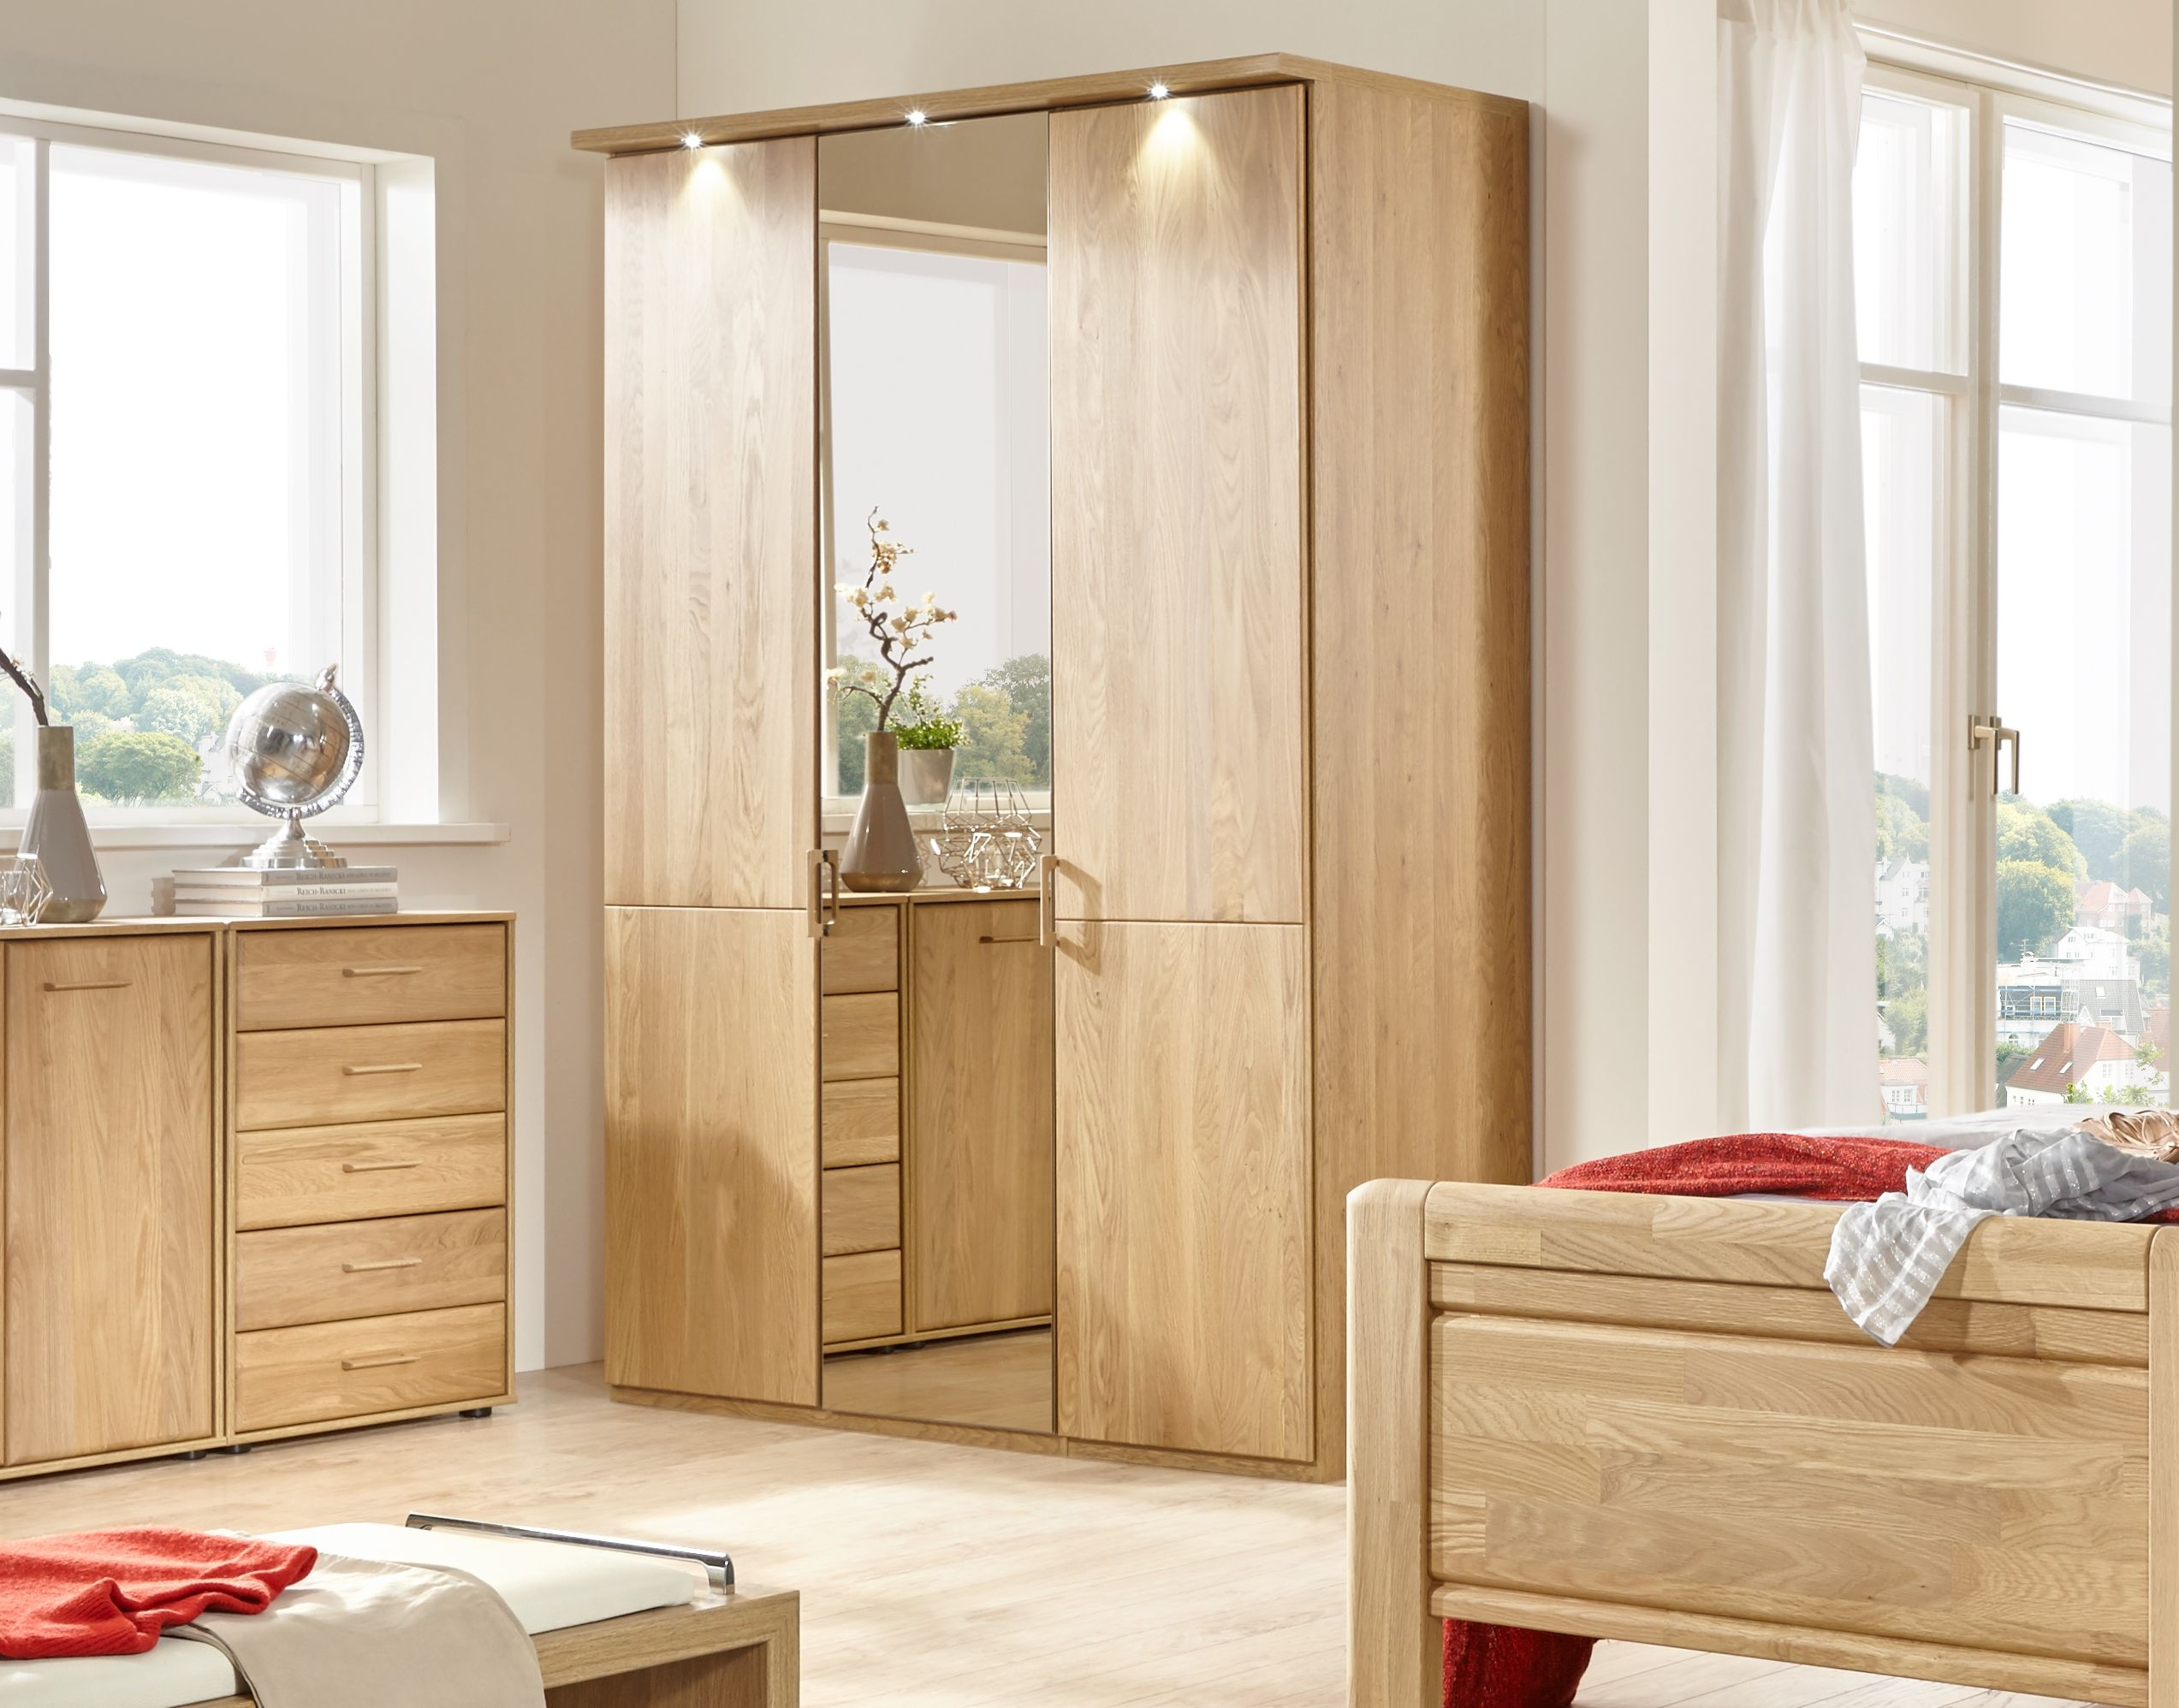 Wiemann Lido 1 Mirror Door Wardrobe in Oak - W 50cm (Right)